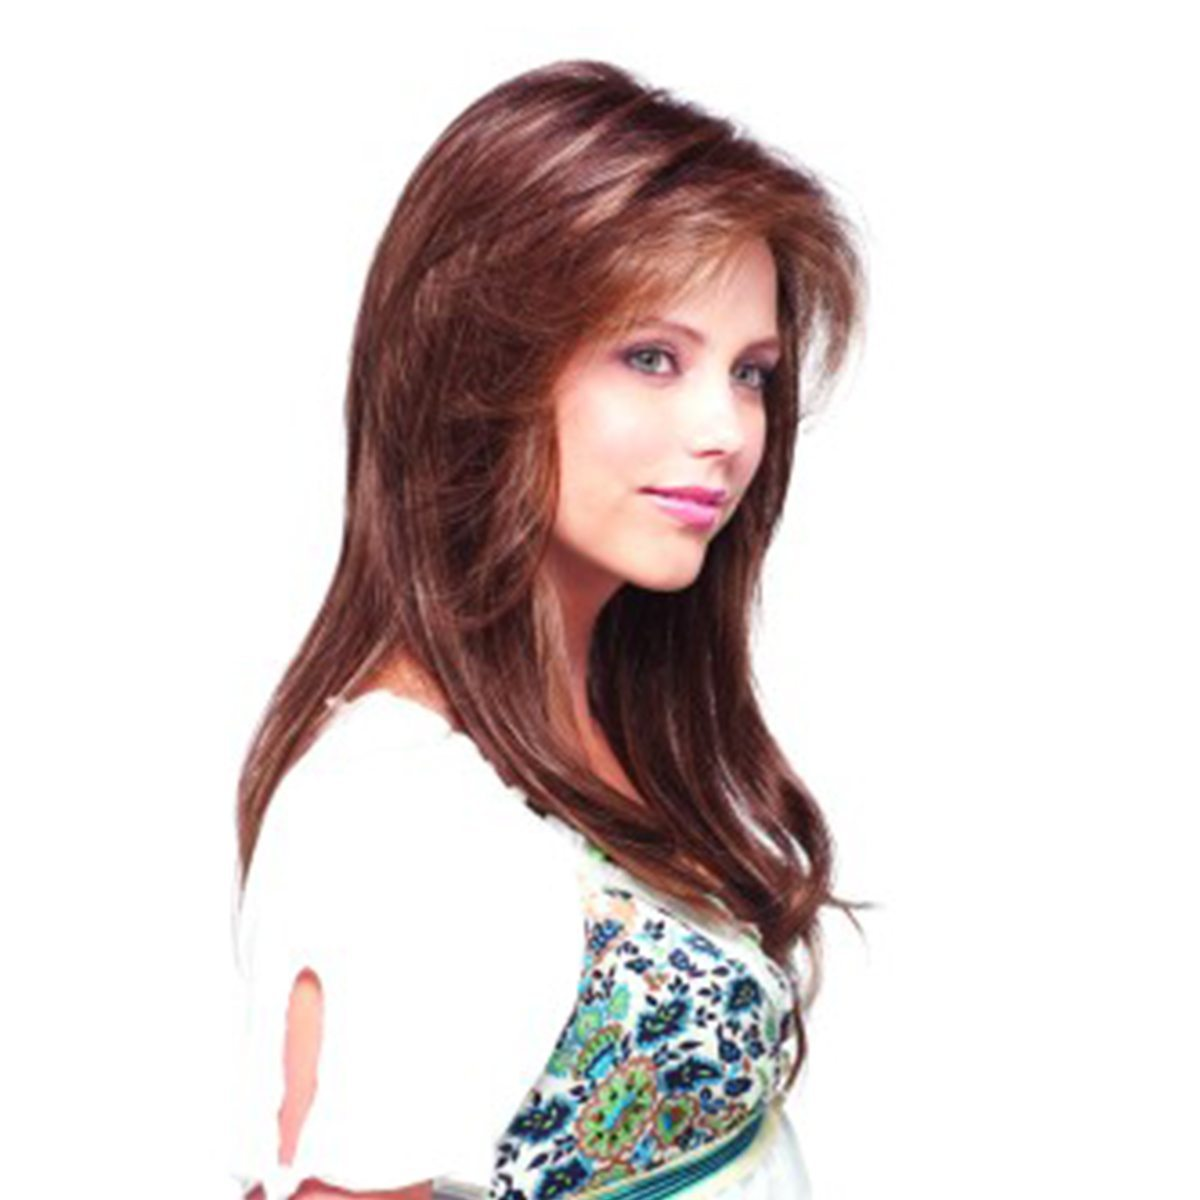 Bailey wig Rene of Paris Hi fashion Collection - image ashley-rop on https://purewigs.com